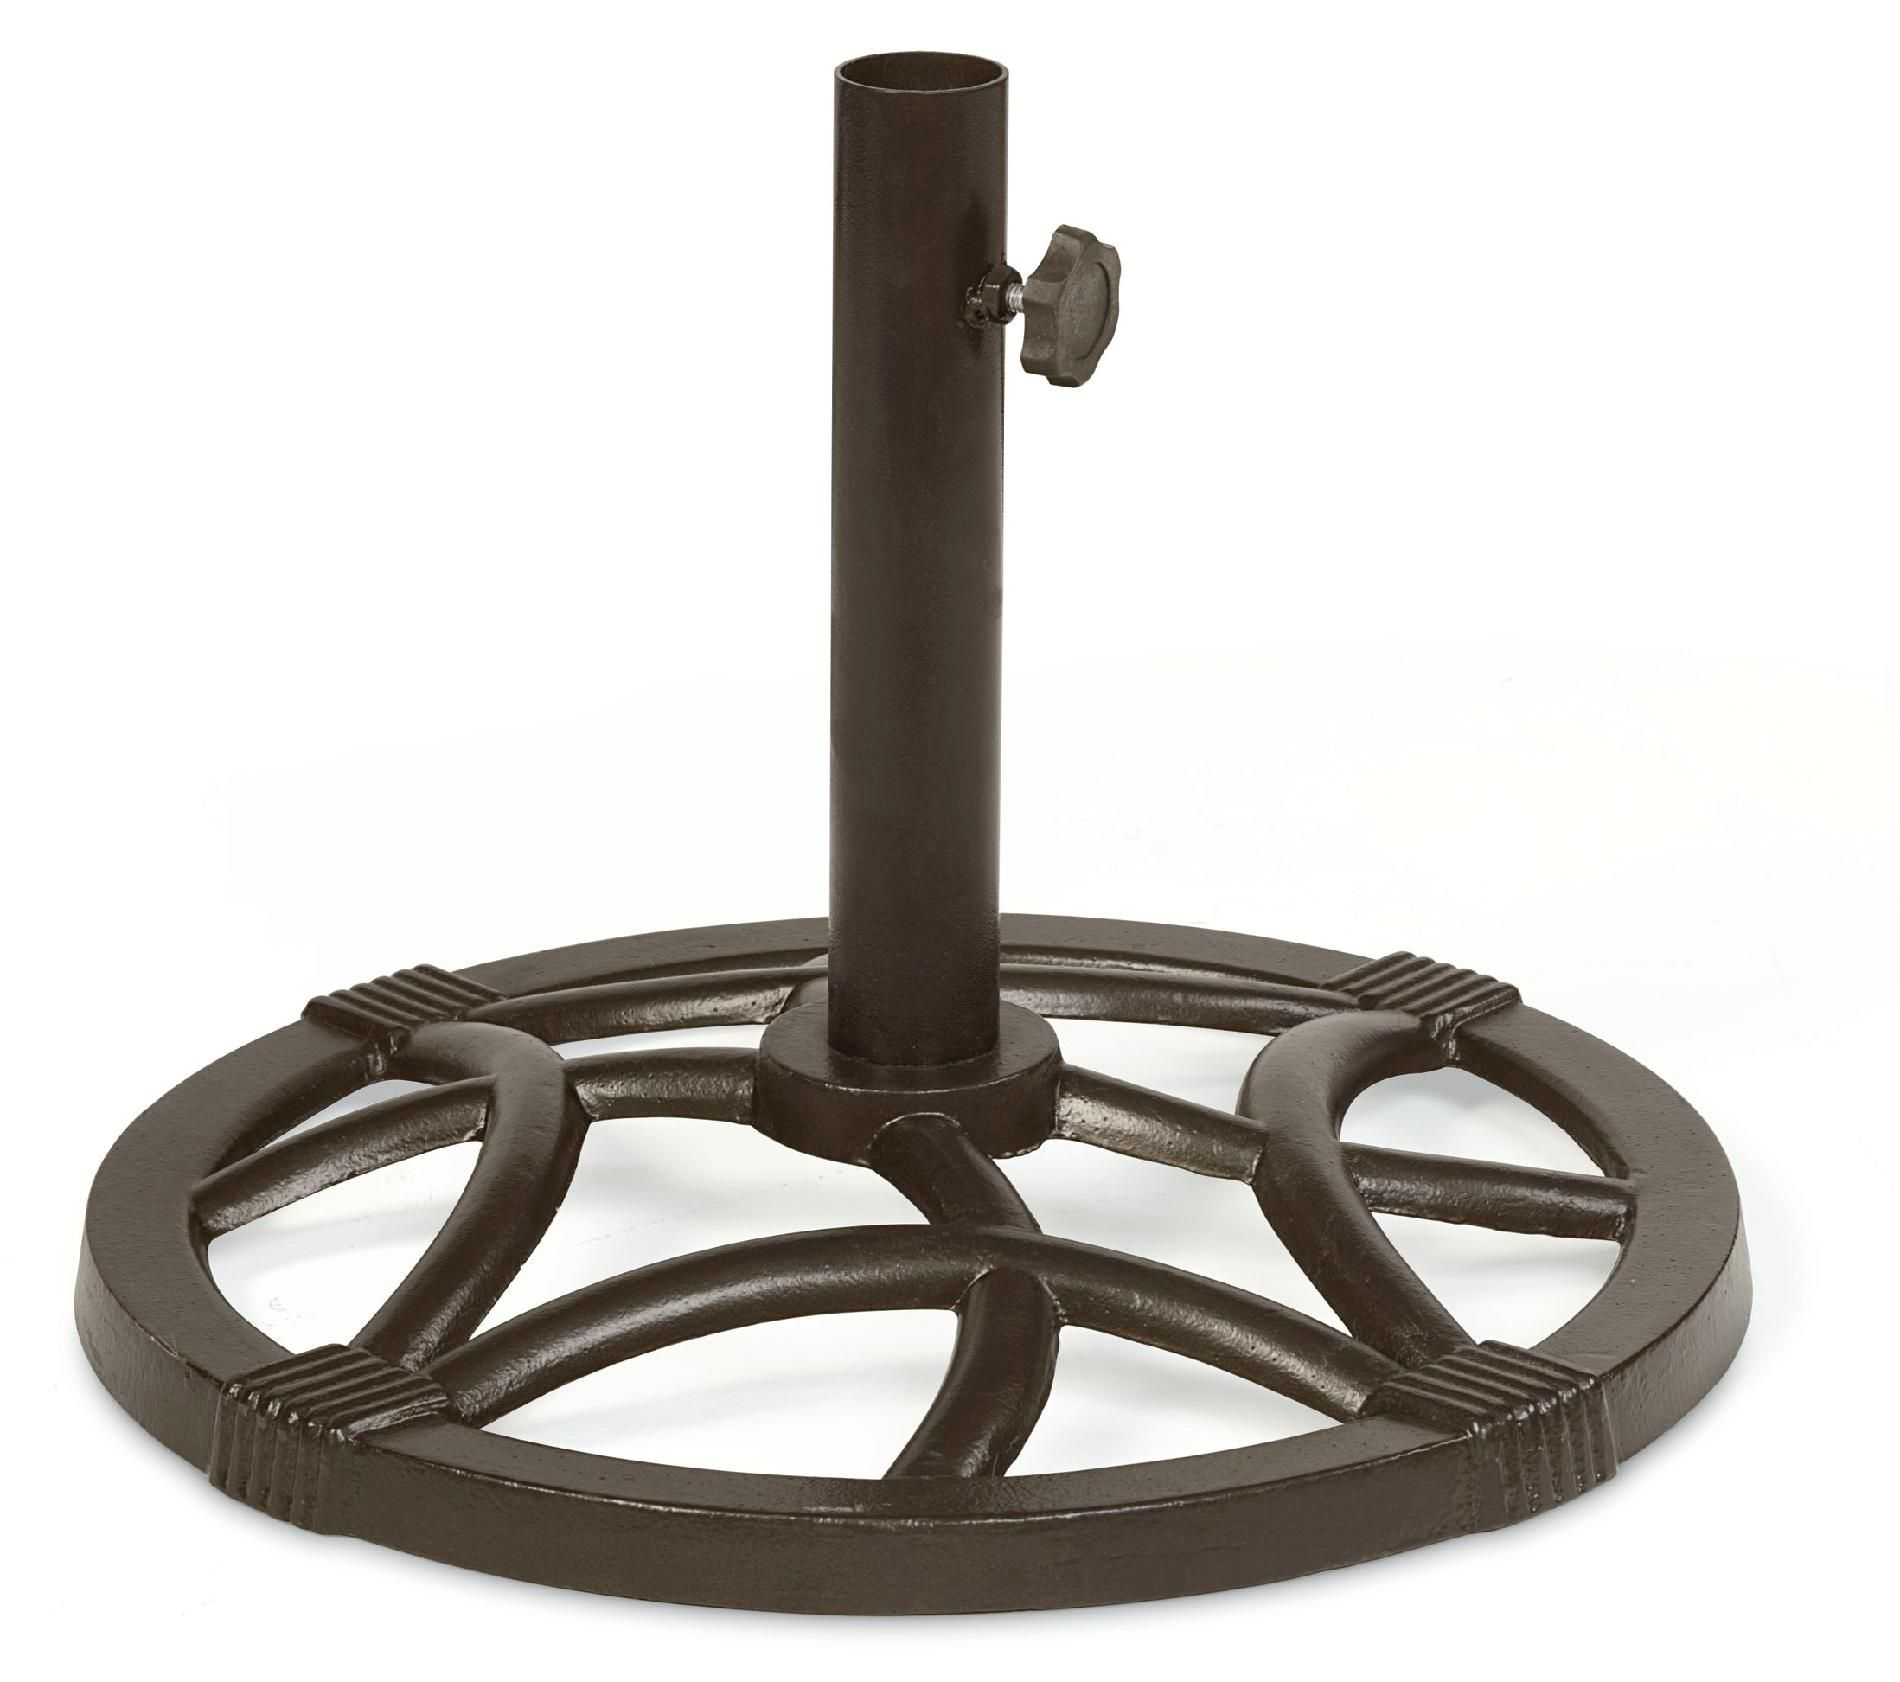 An strong Umbrella Base strong is an essential accessory to any